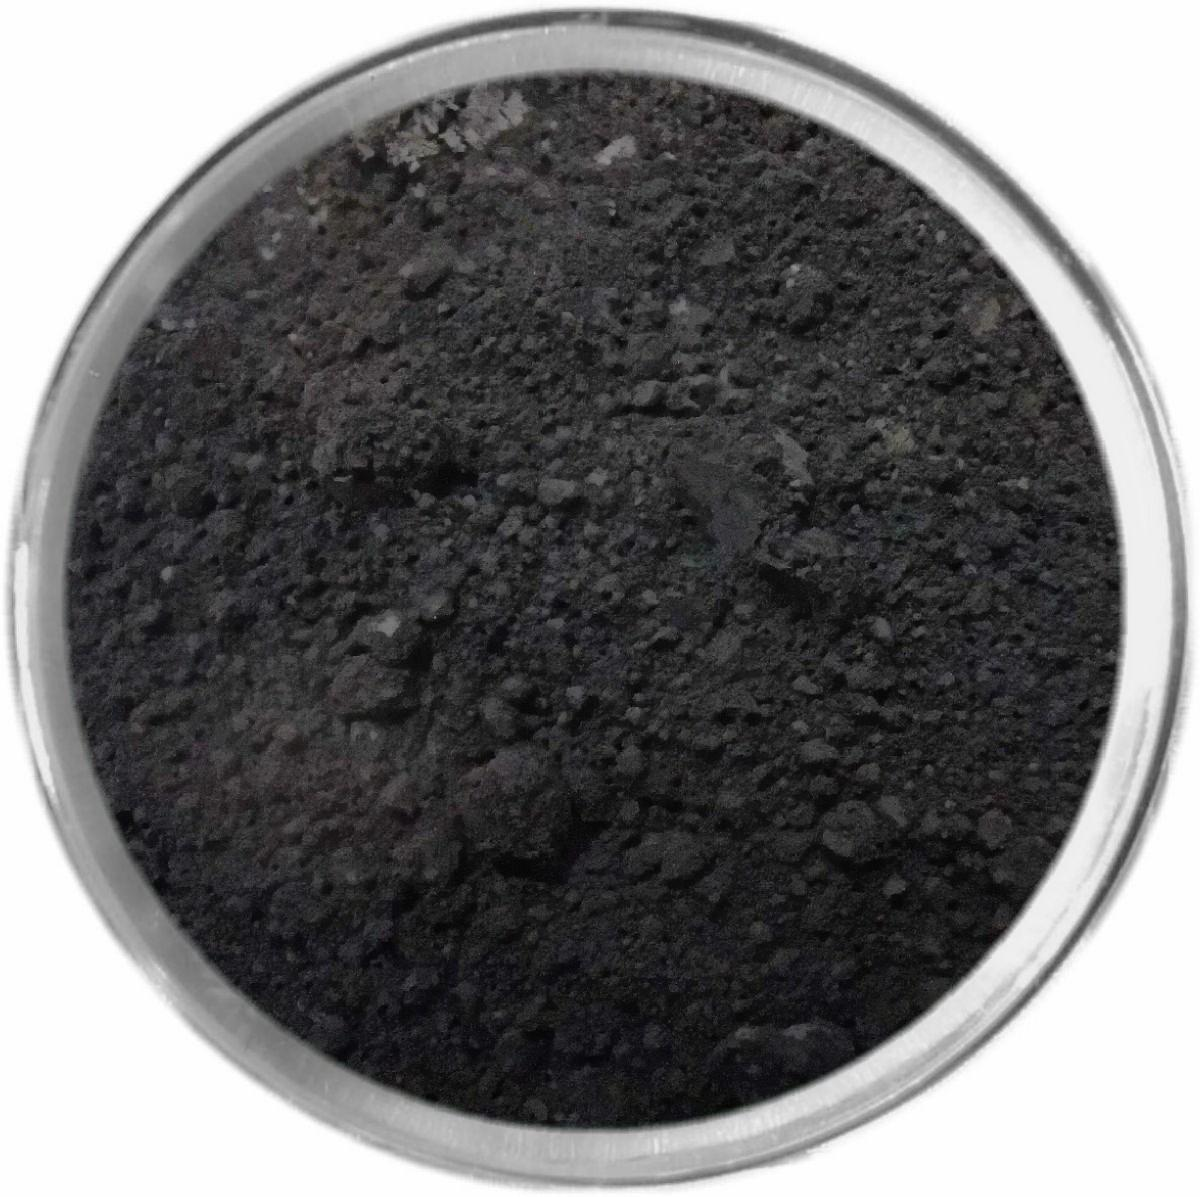 BLACK loose powder mineral multi-use color makeup bare earth pigment minerals